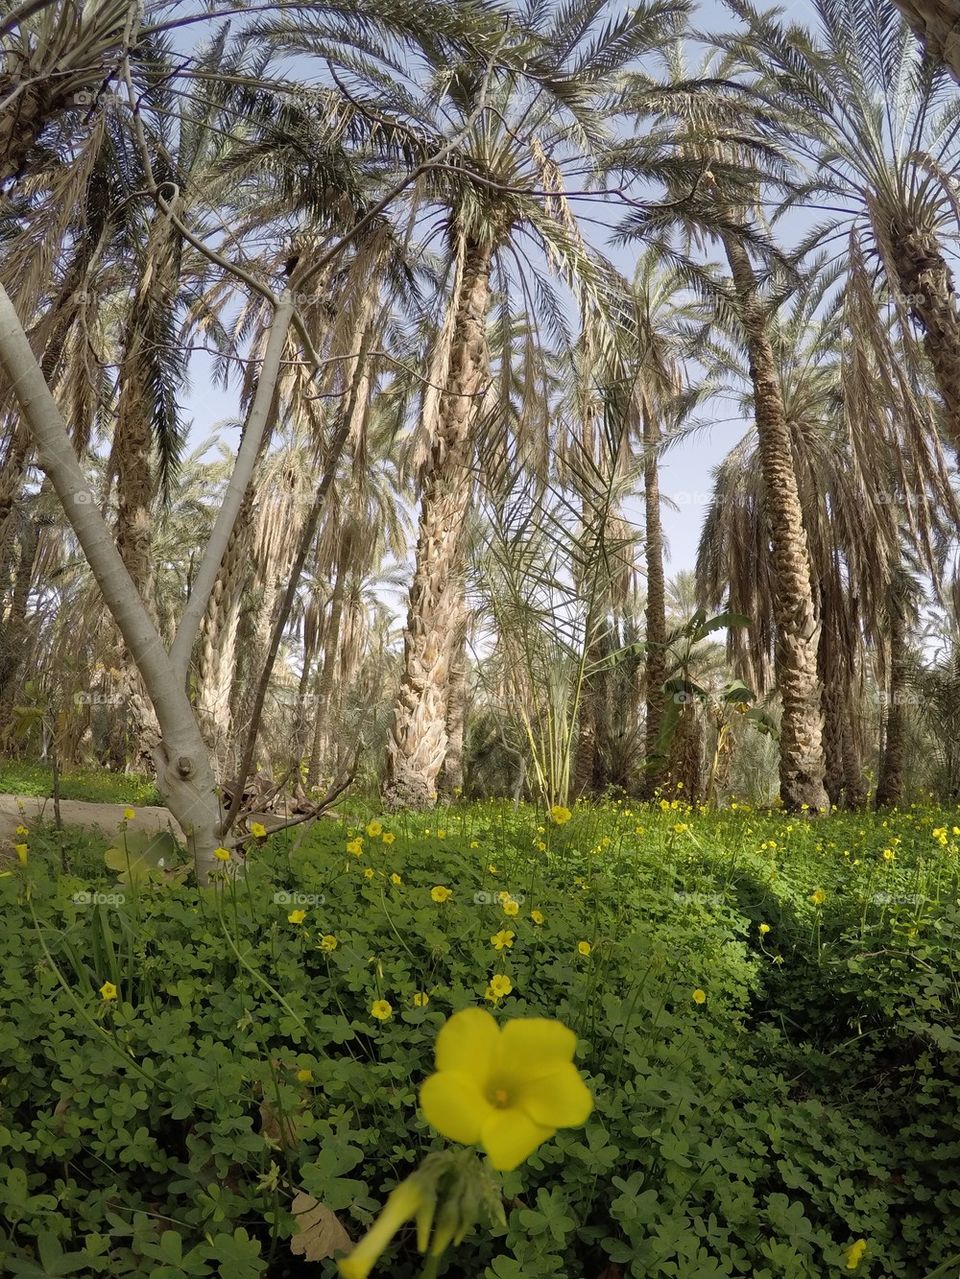 Date palm trees in a desert oasis in Tunisia with green grass growing around them